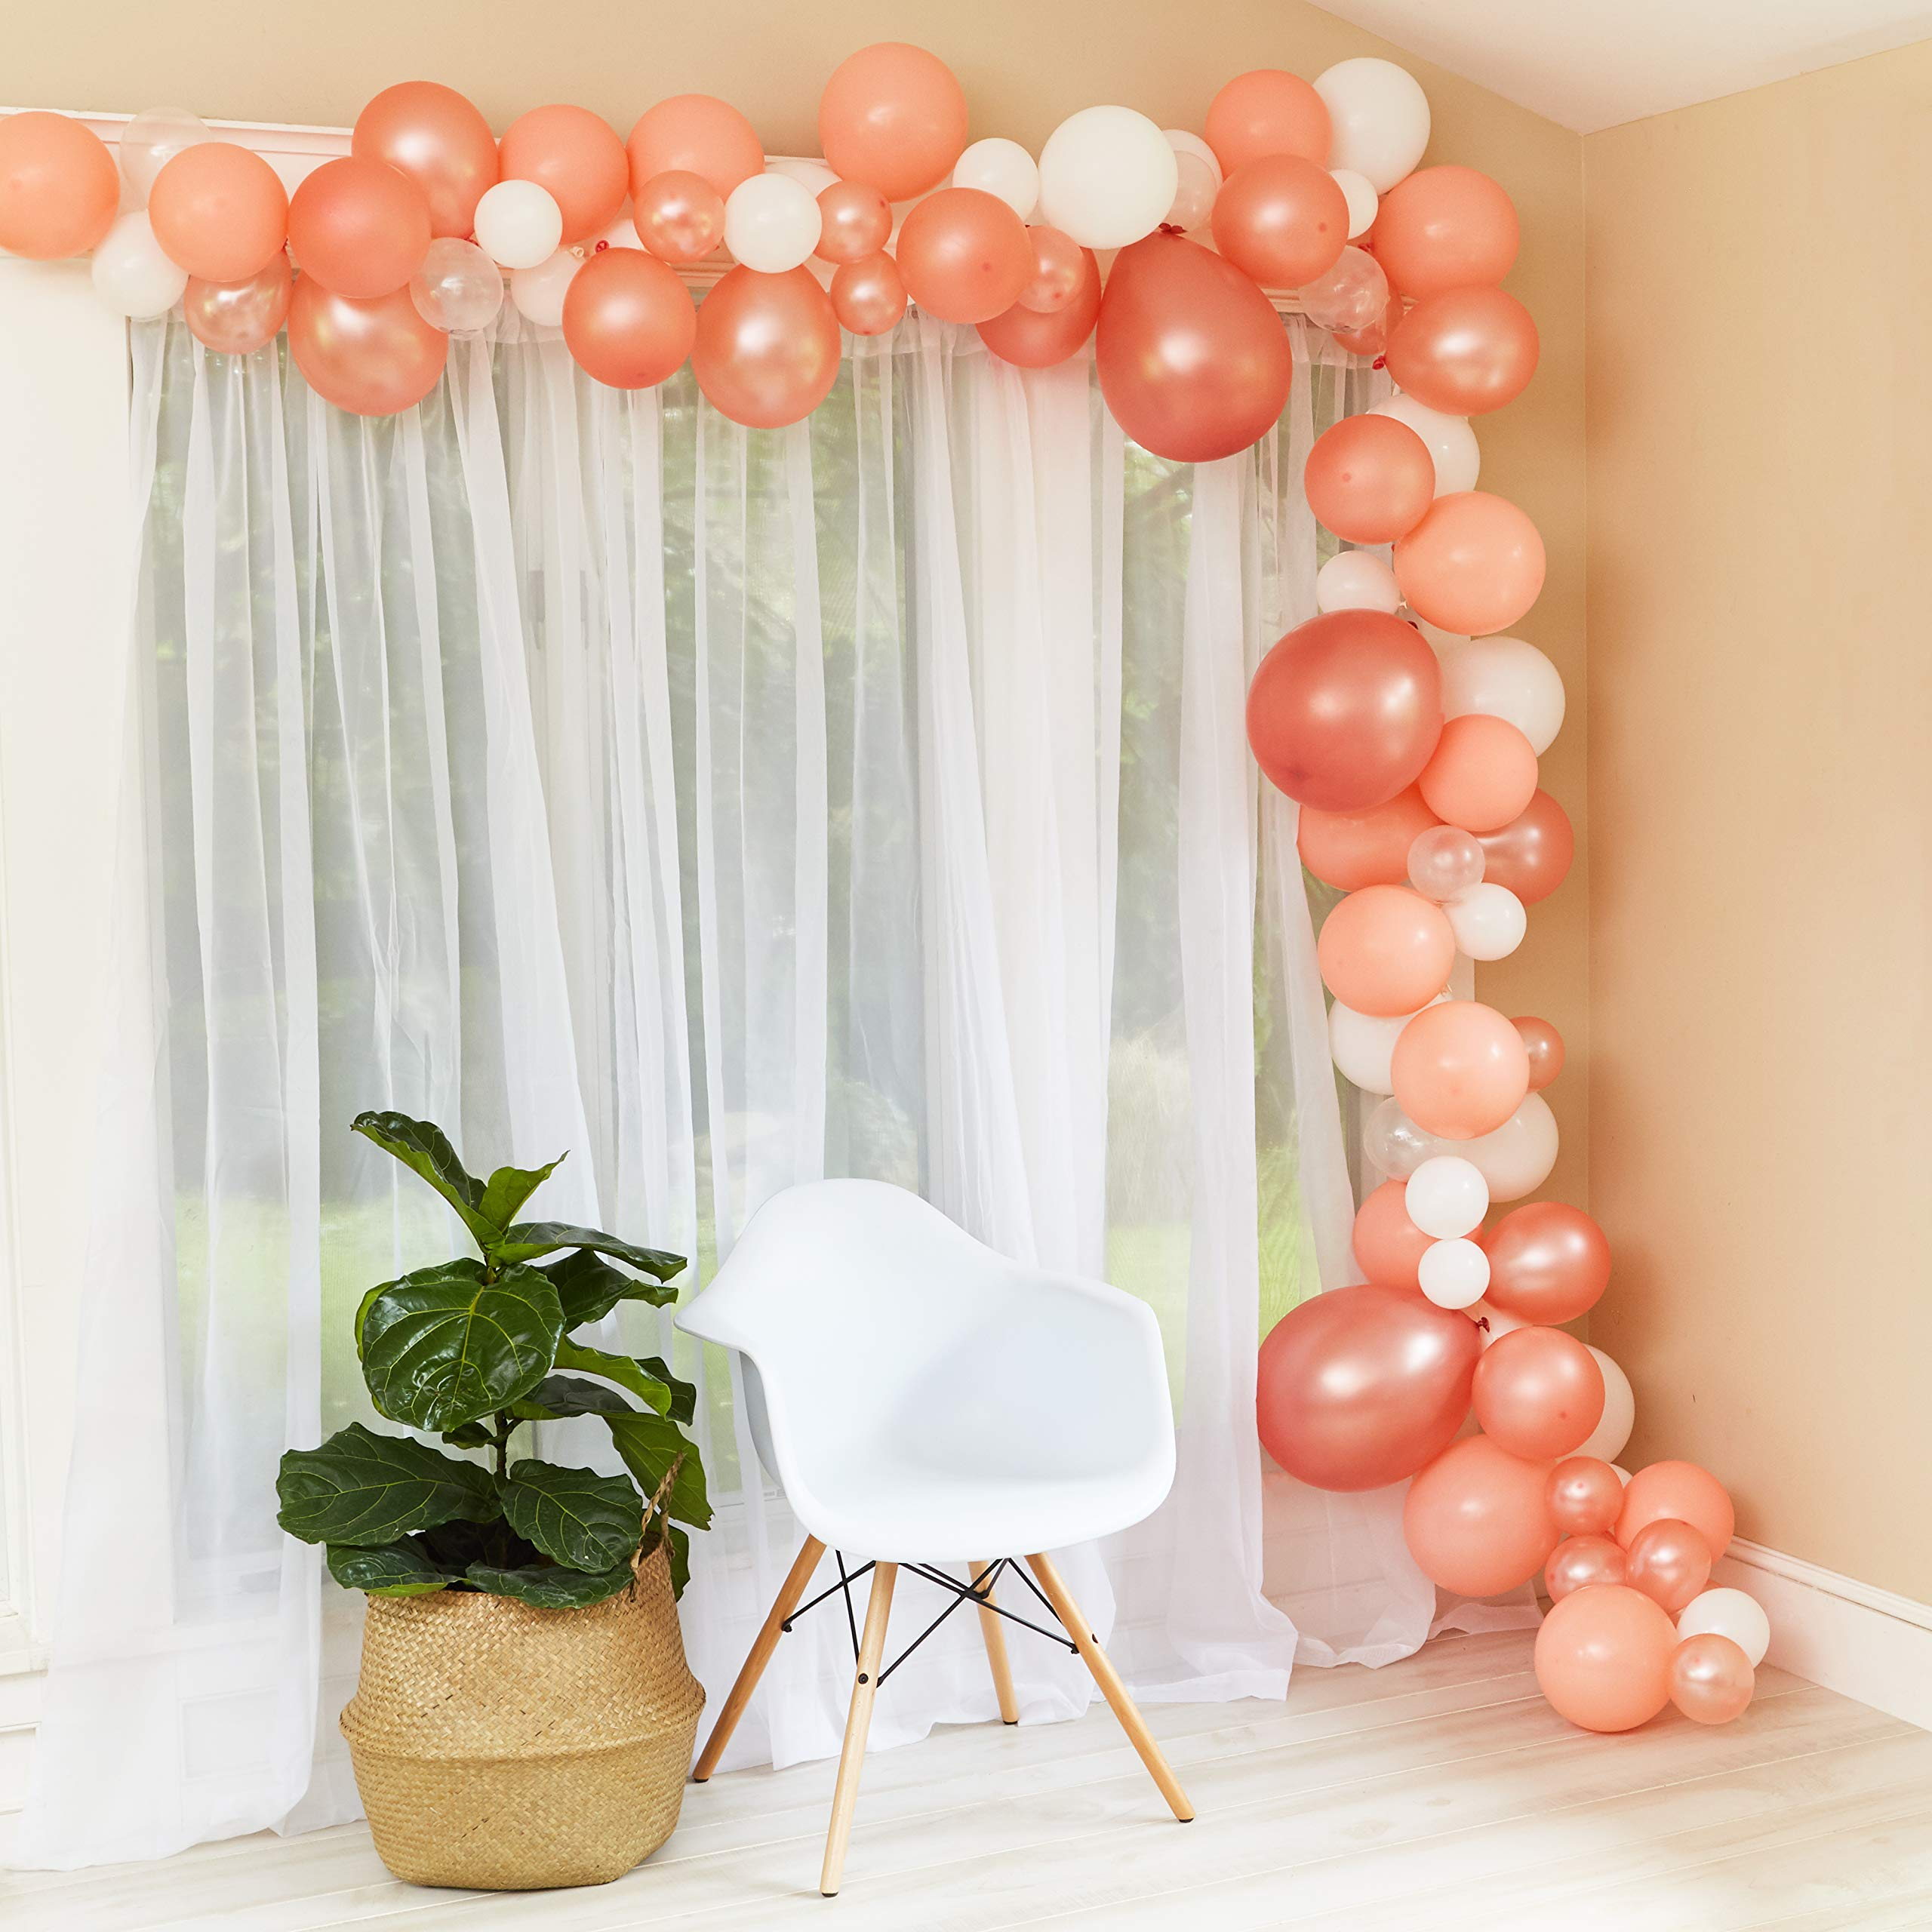 Balloon Garland Arch Kit - Baby Shower/Wedding/Birthday/Graduation/Party/Kitchen/Bachelorette Decorations - Rose Gold/Peach Confetti Balloons Backdrop Decor - Air Pump Included - Indoor/Outdoor